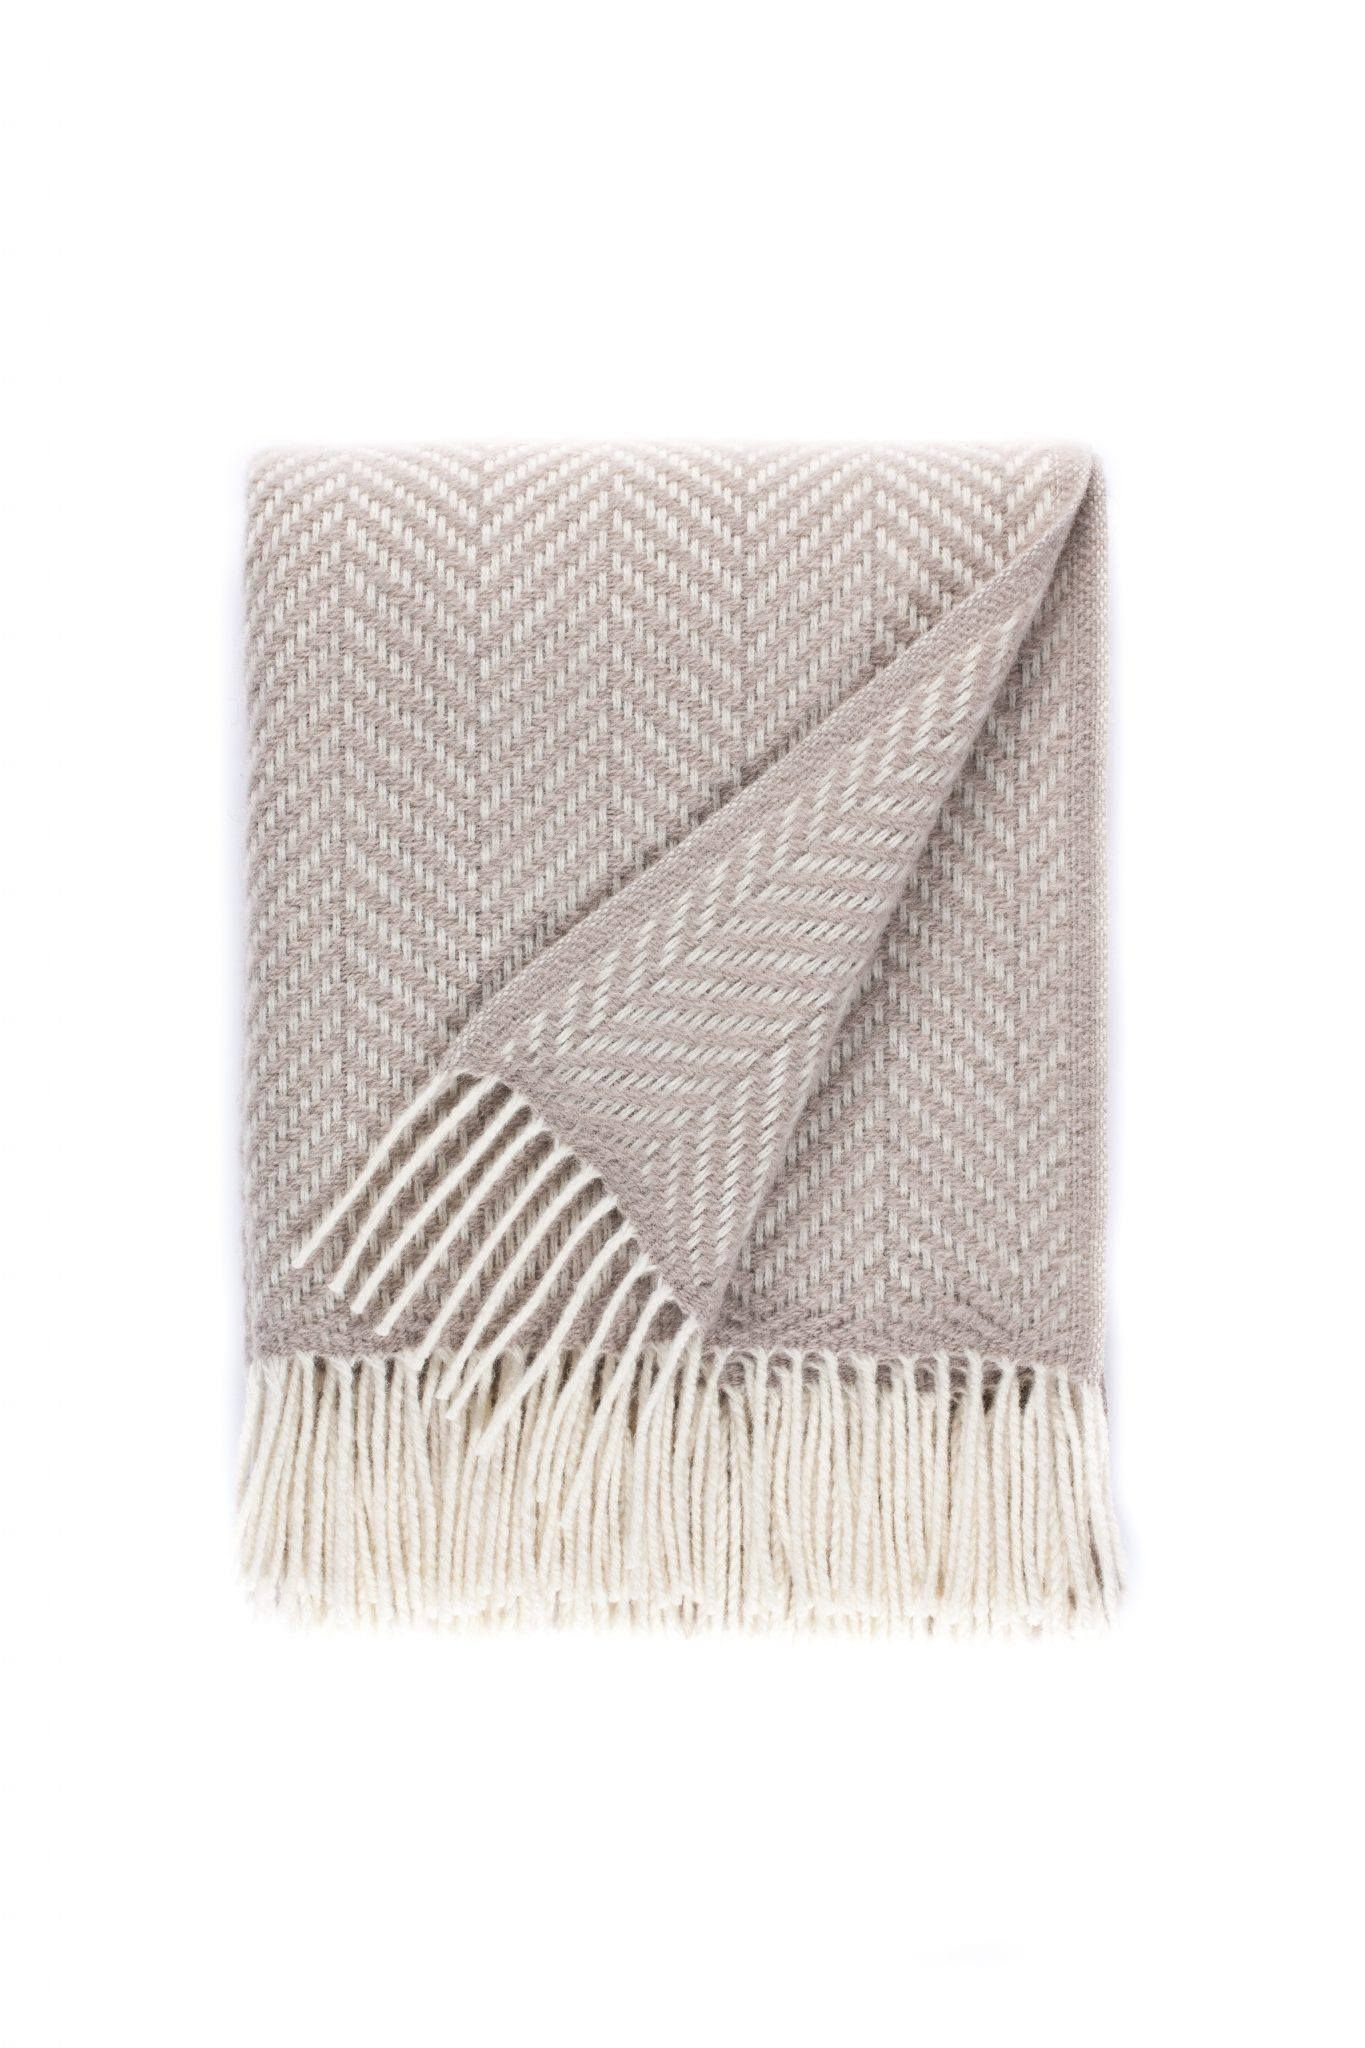 Wool blanket Goda